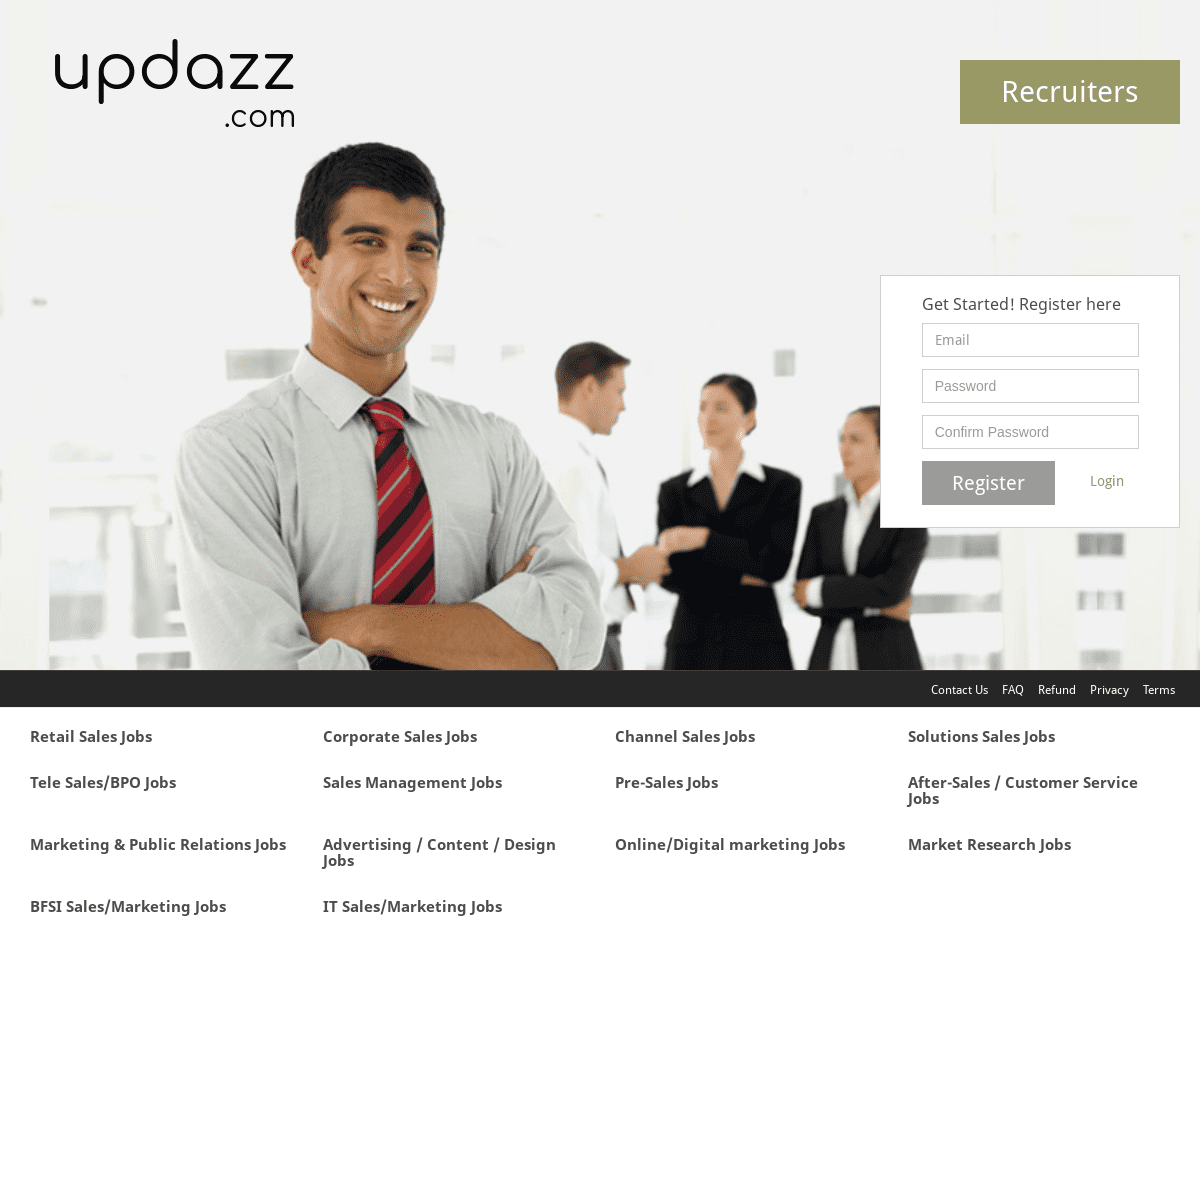 Jobseekers login - updazz.com